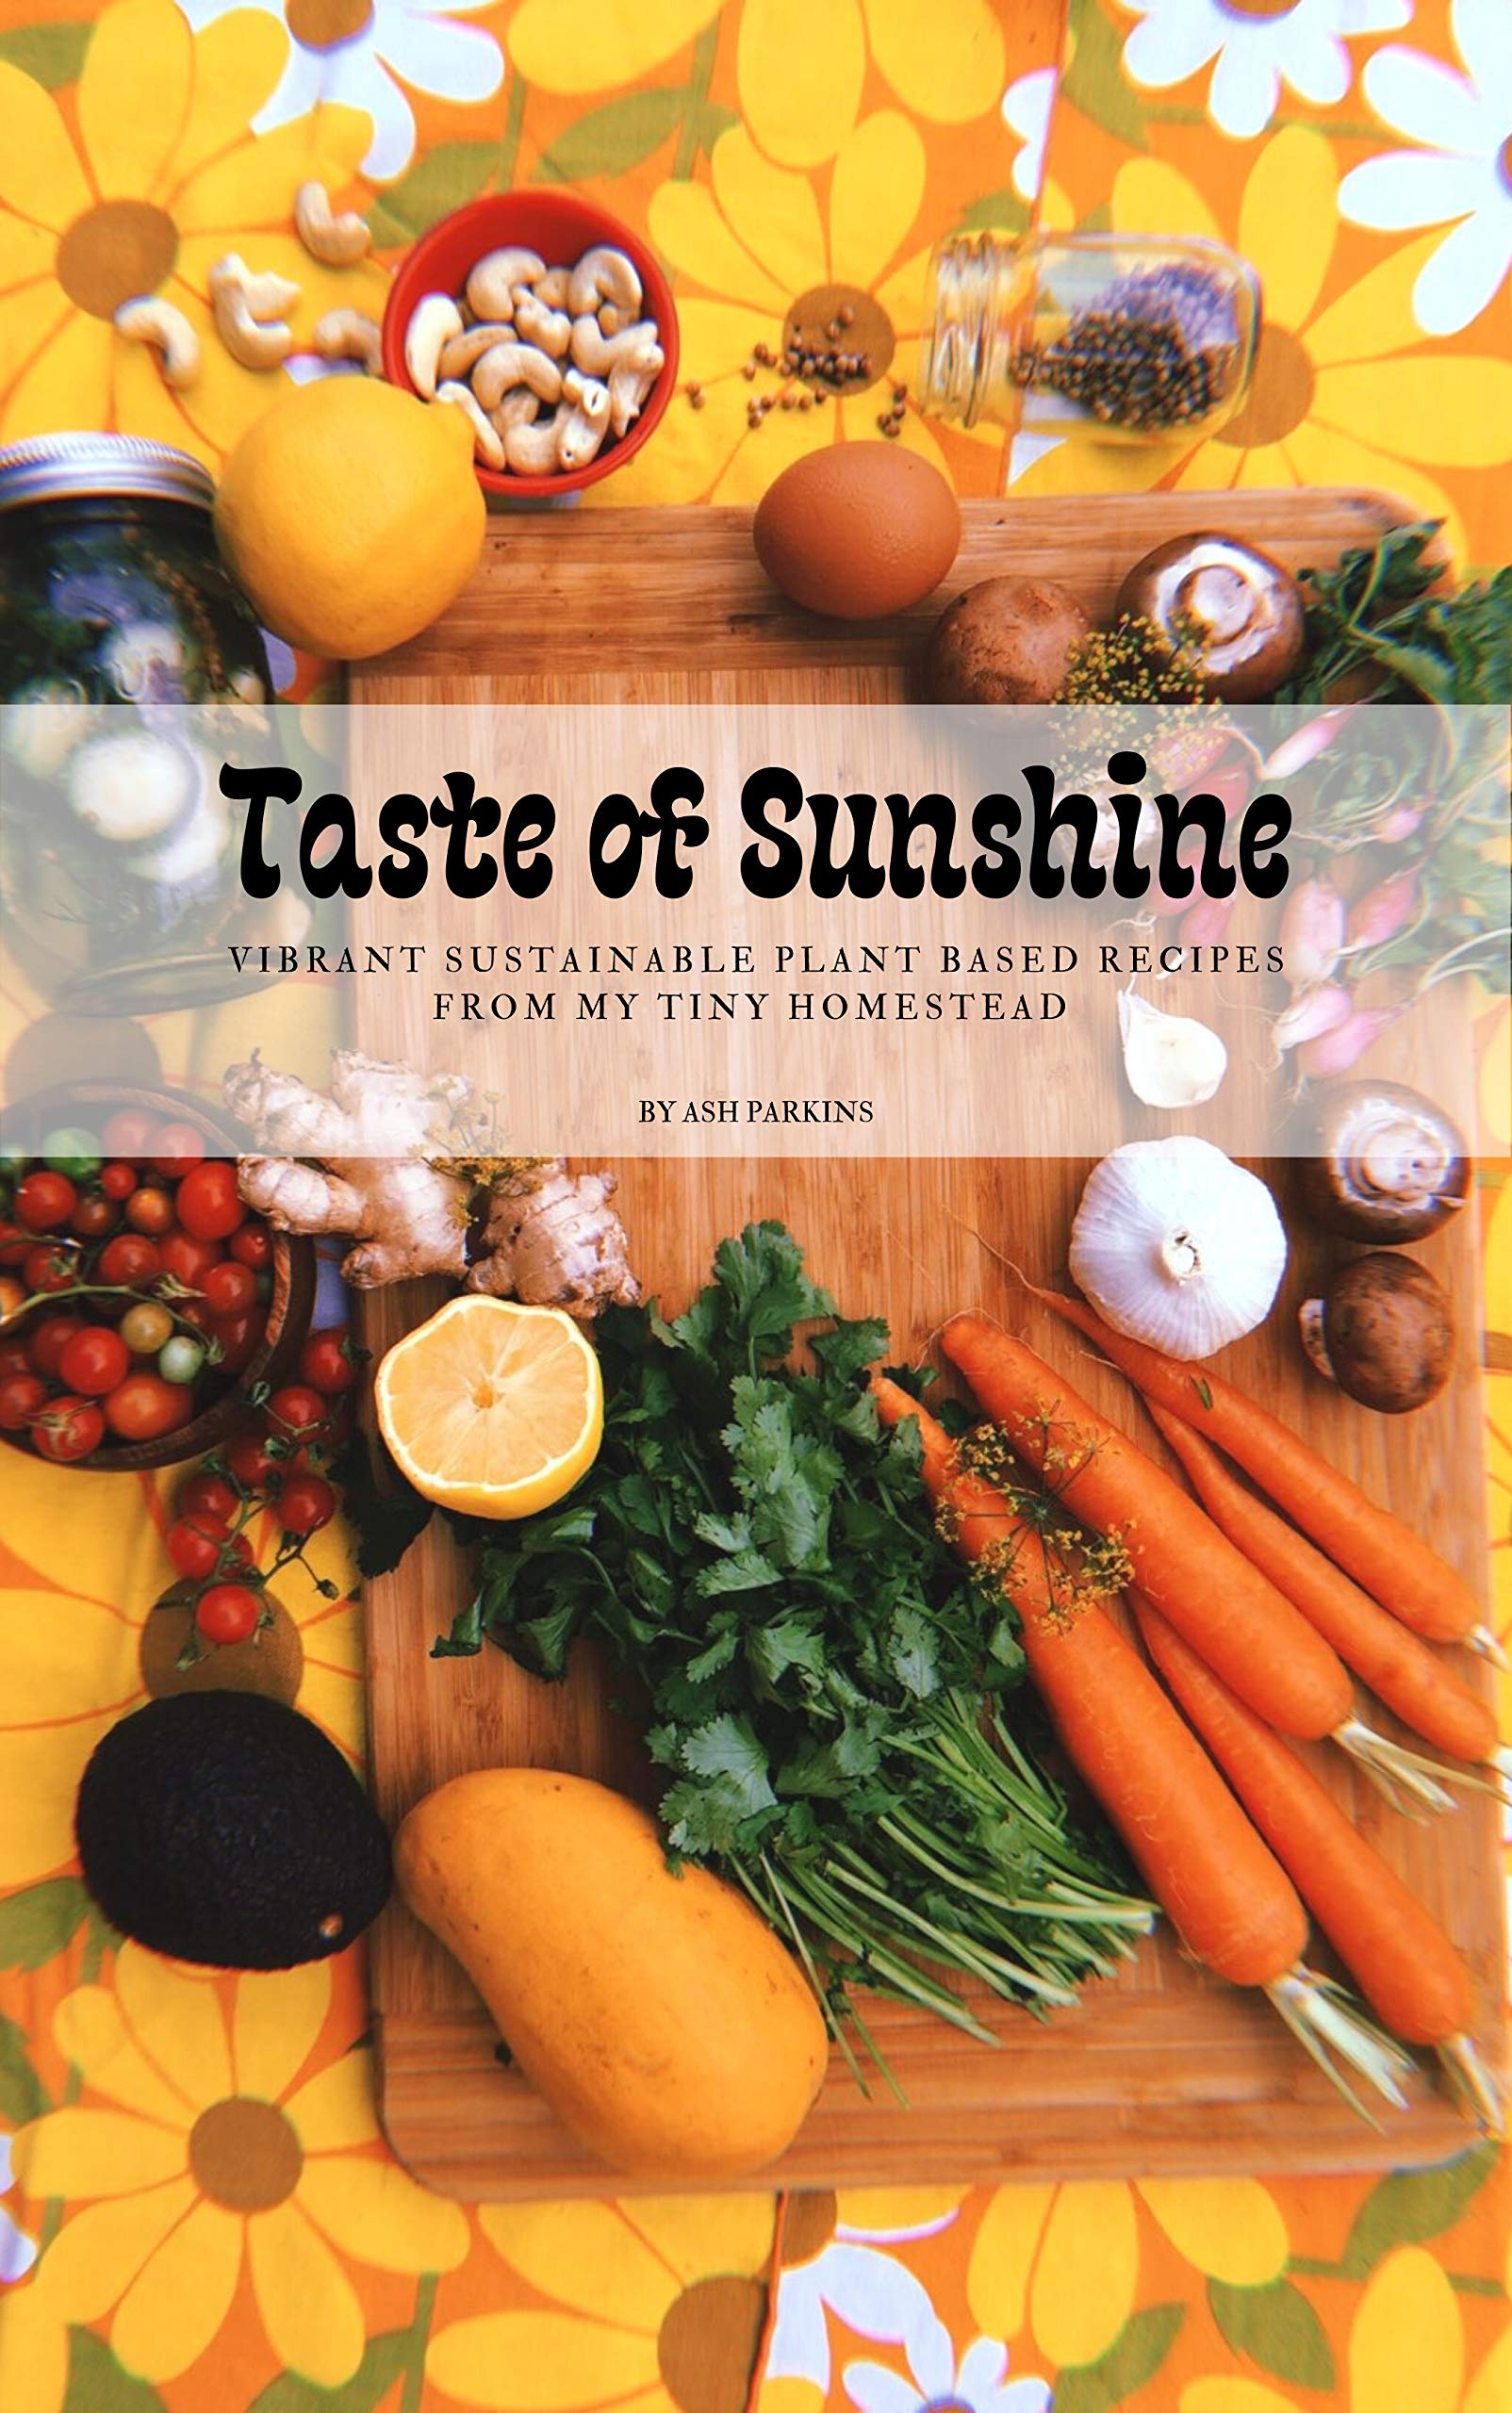 Taste of Sunshine: Vibrant Sustainable Plant-Based Recipes from my Tiny Homestead